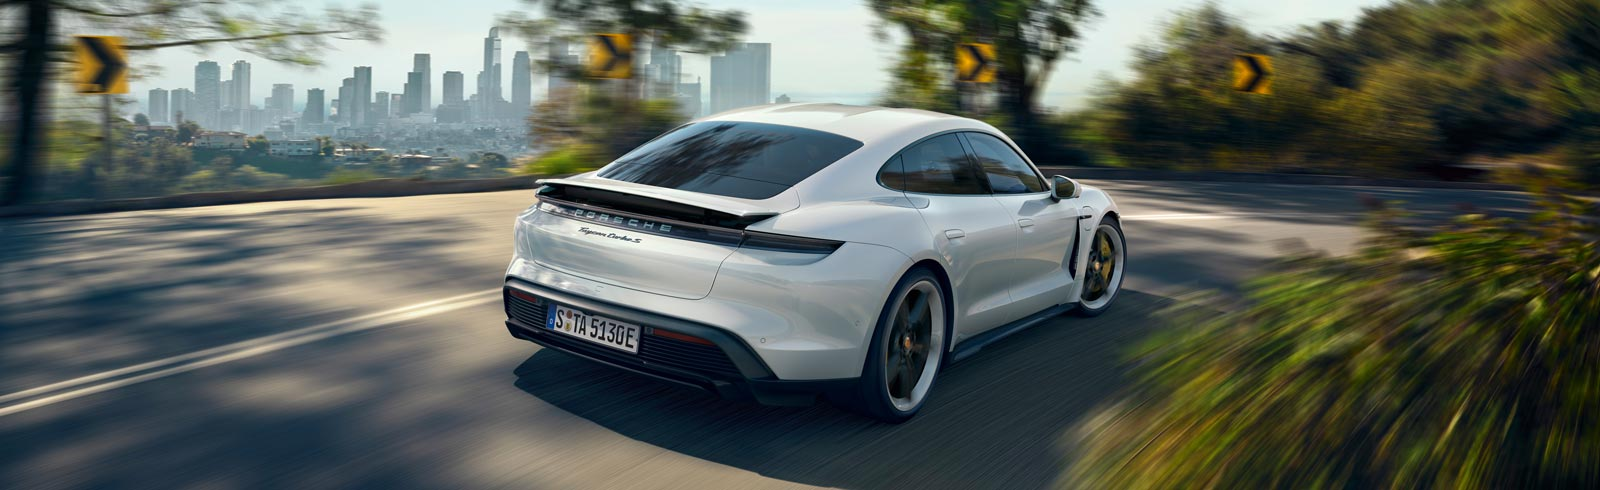 Porsche Taycan Turbo and Turbo S receive CARB certification for range